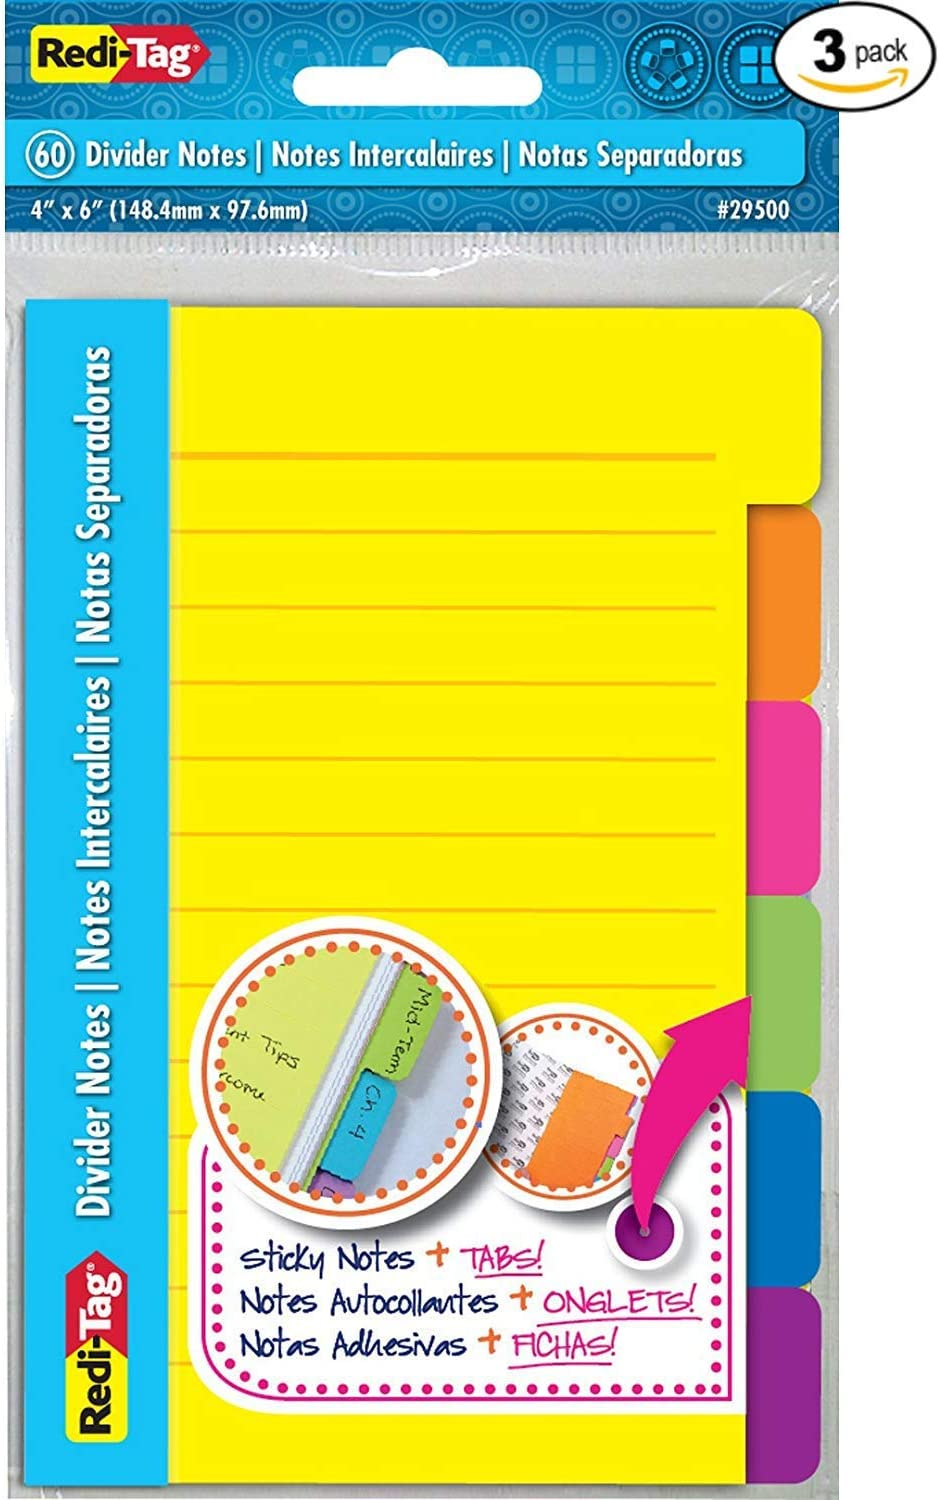 Tabbed Self-Stick Lined Note Pad 60 1 Pack Redi-Tag Divider Sticky Notes